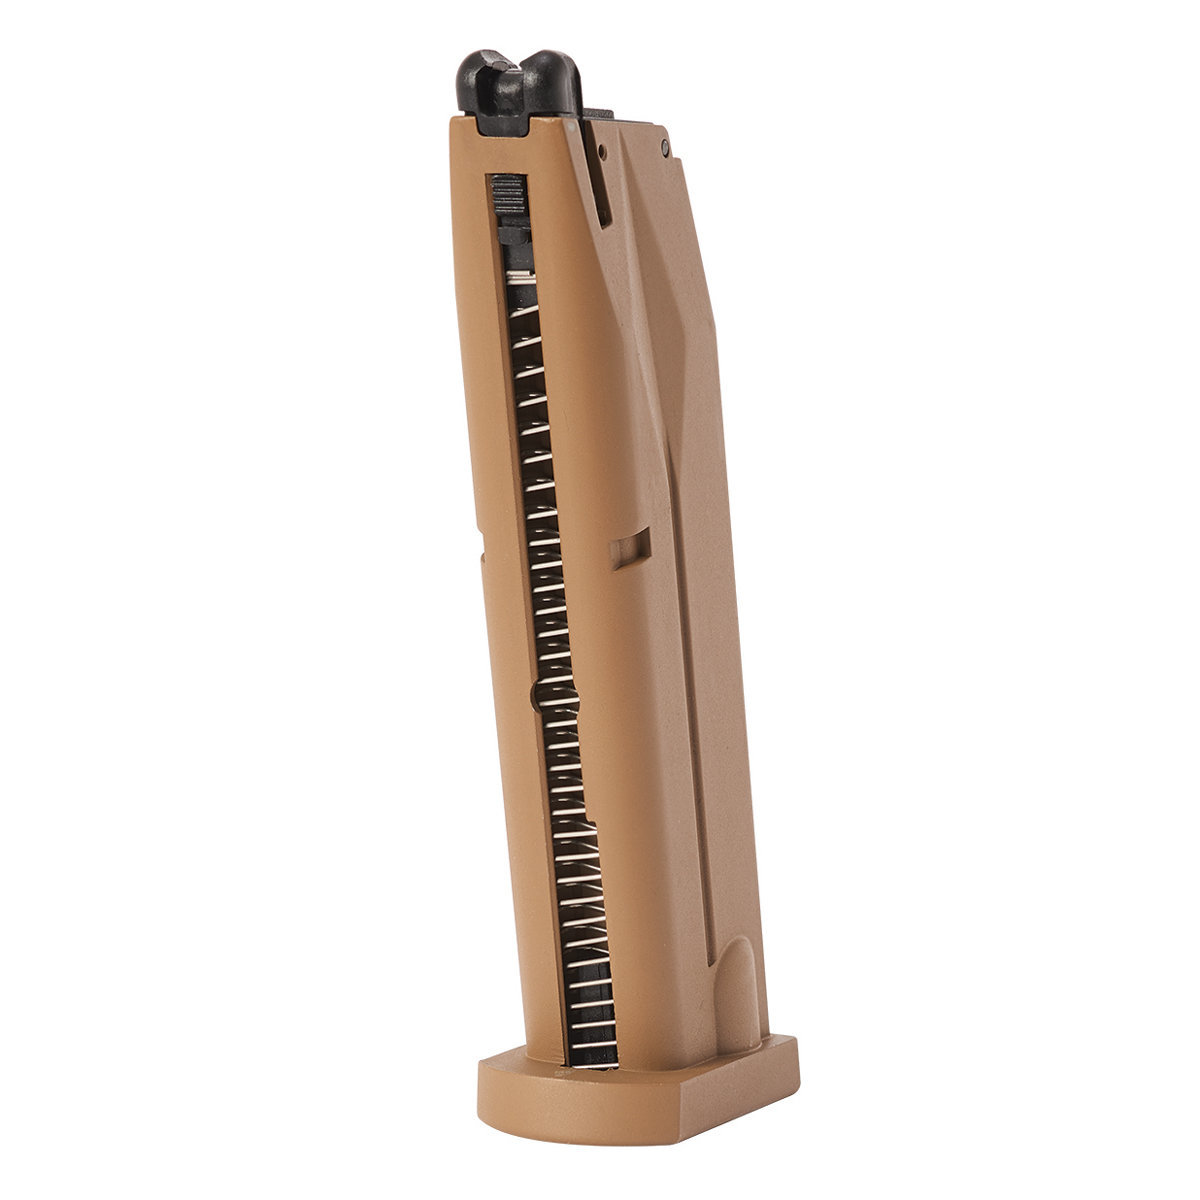 View larger image of Umarex 26rd Beretta M9 A3 CO2 Airsoft Magazine - Tan